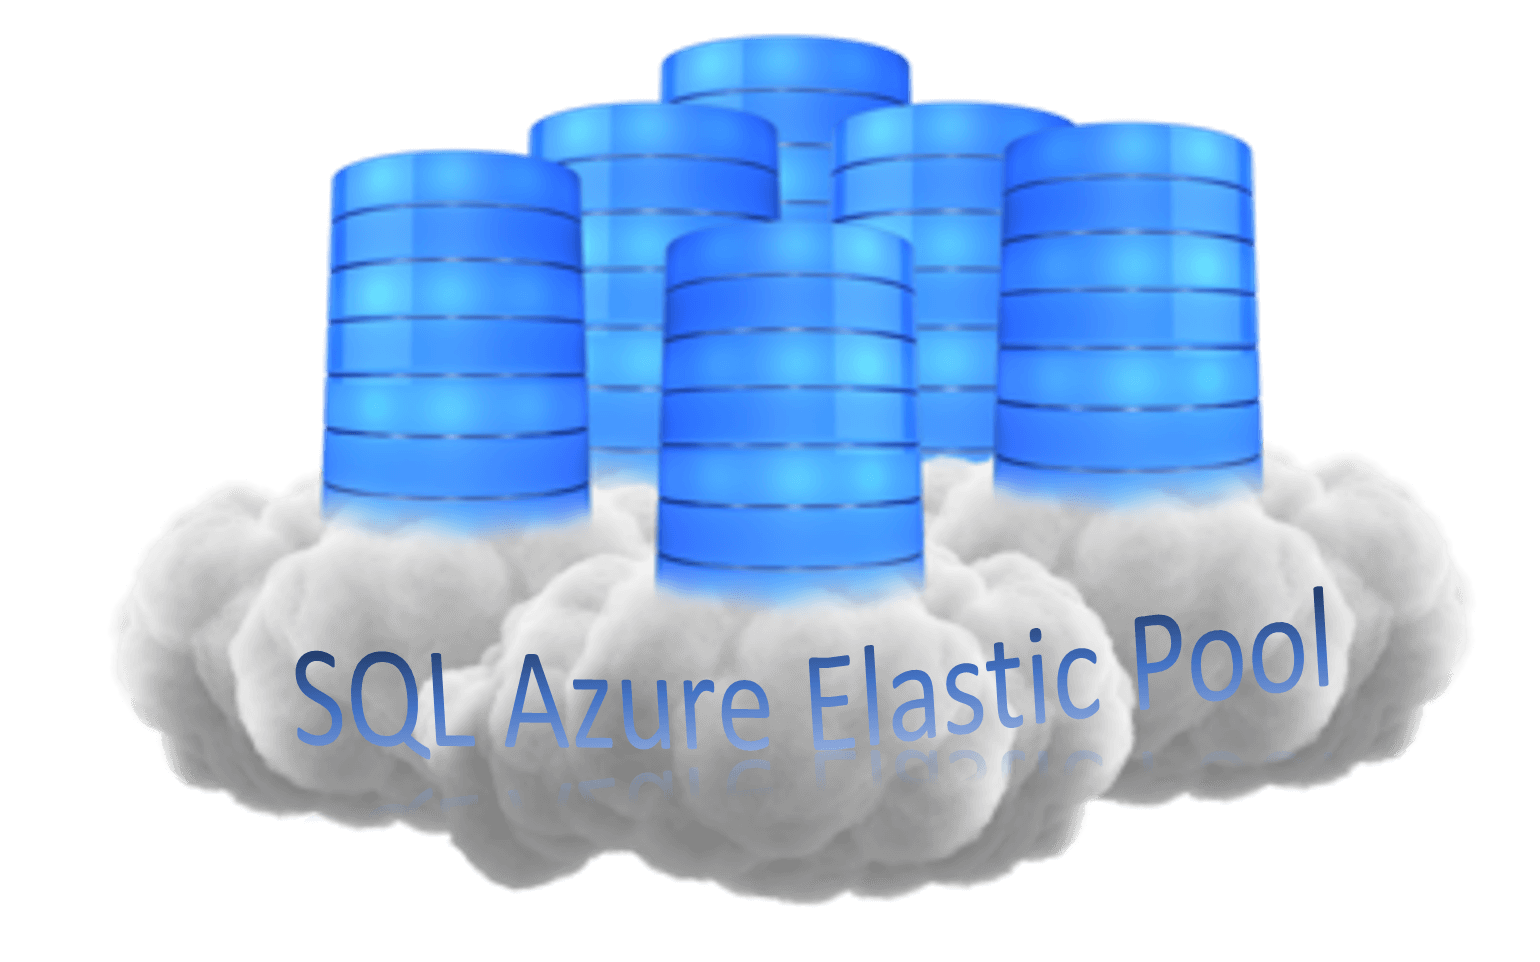 SQL Azure Elastic Pool - Product Review